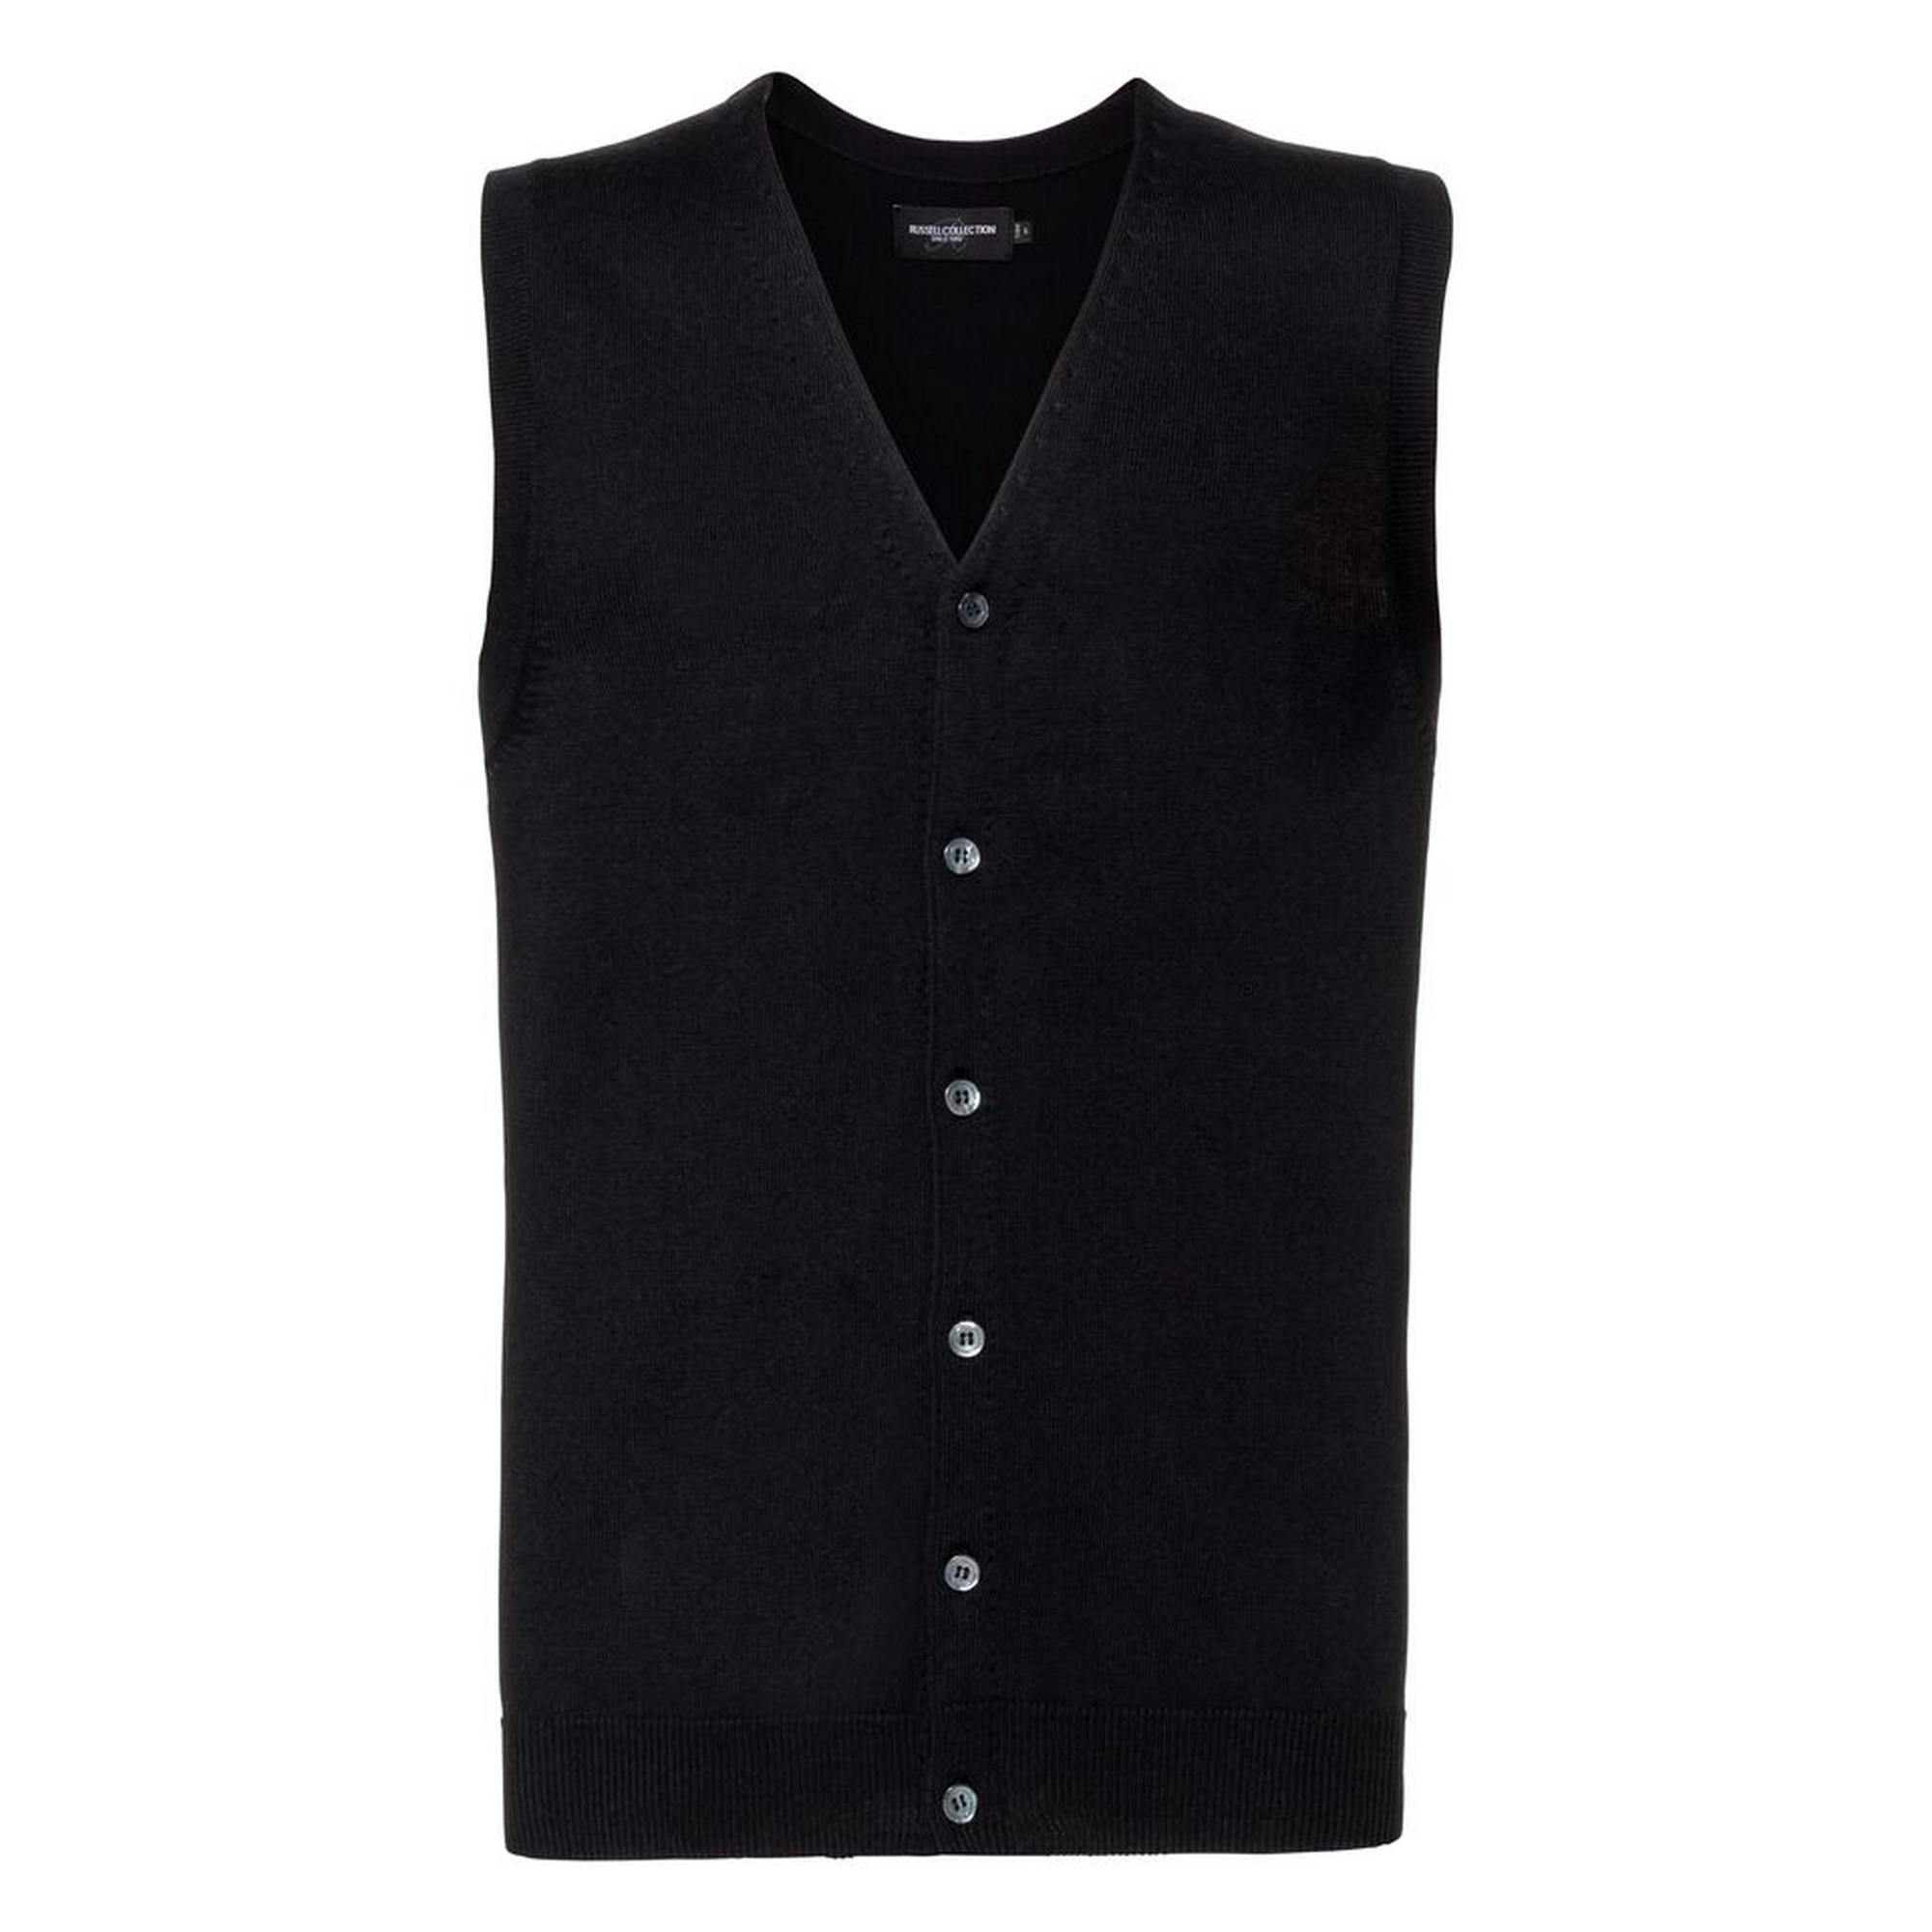 Russell Collection Mens V-neck Sleeveless Knitted Cardigan (M) (Black)